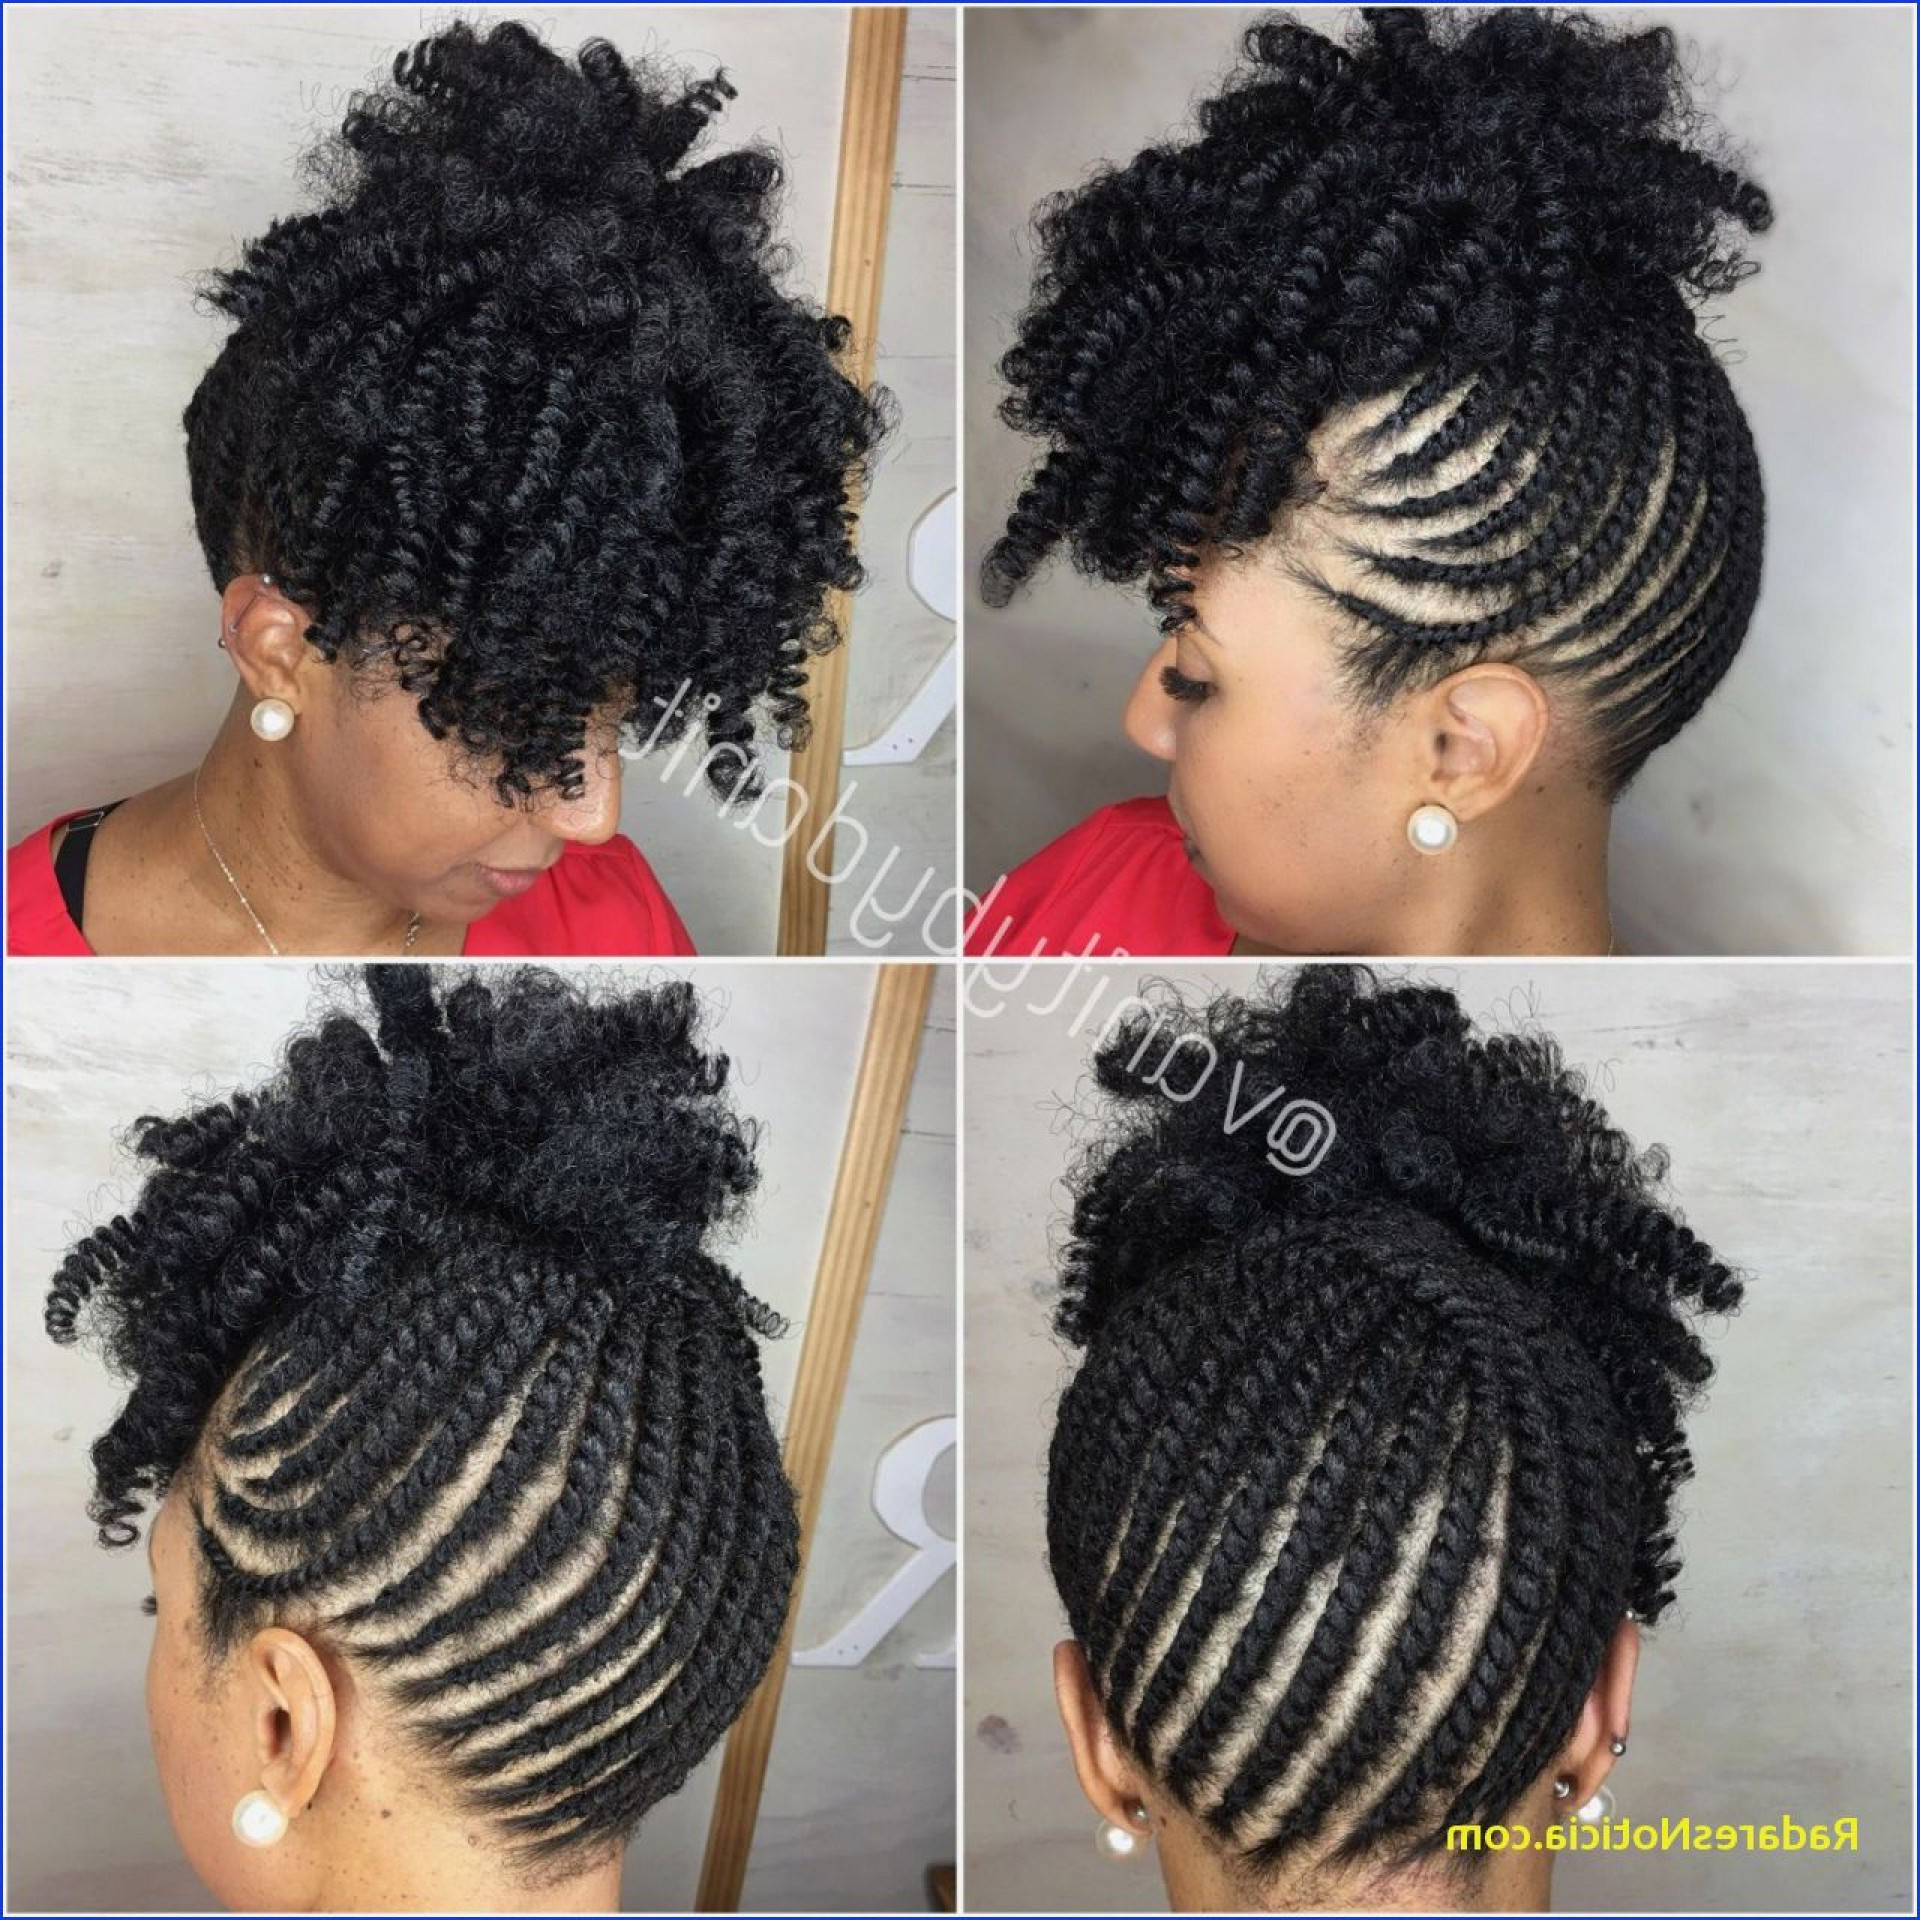 Braided Updo Hairstyles With Weave Braided Mohawk Hairstyles Intended For Favorite Black Twisted Mohawk Braid Hairstyles (View 15 of 20)